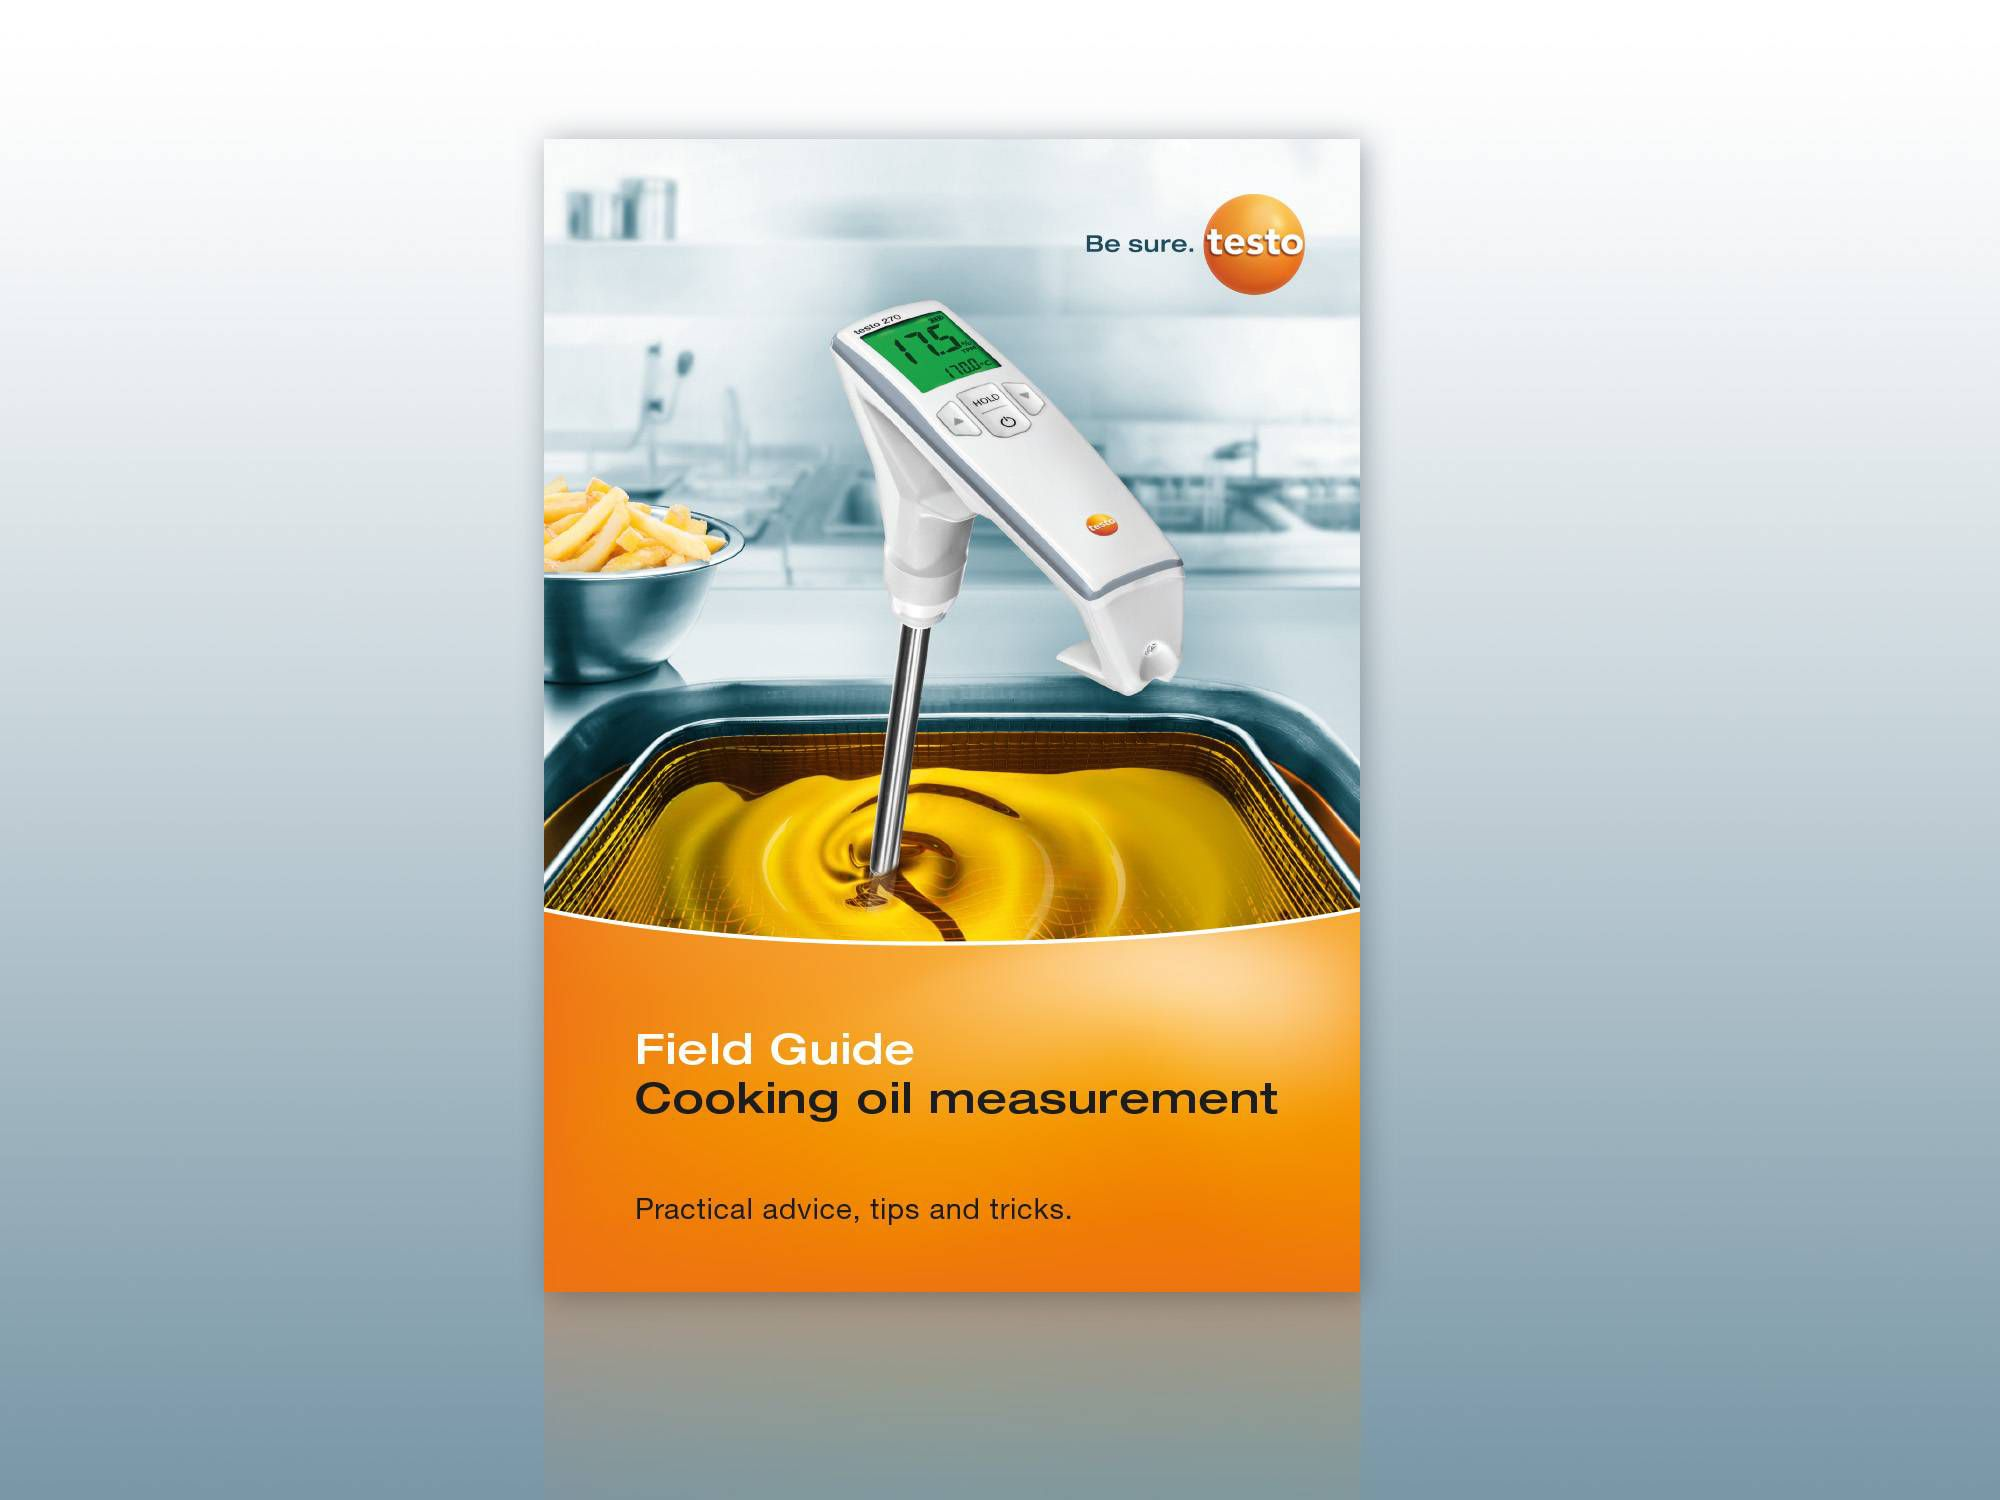 Practical guide to cooking oil measurement